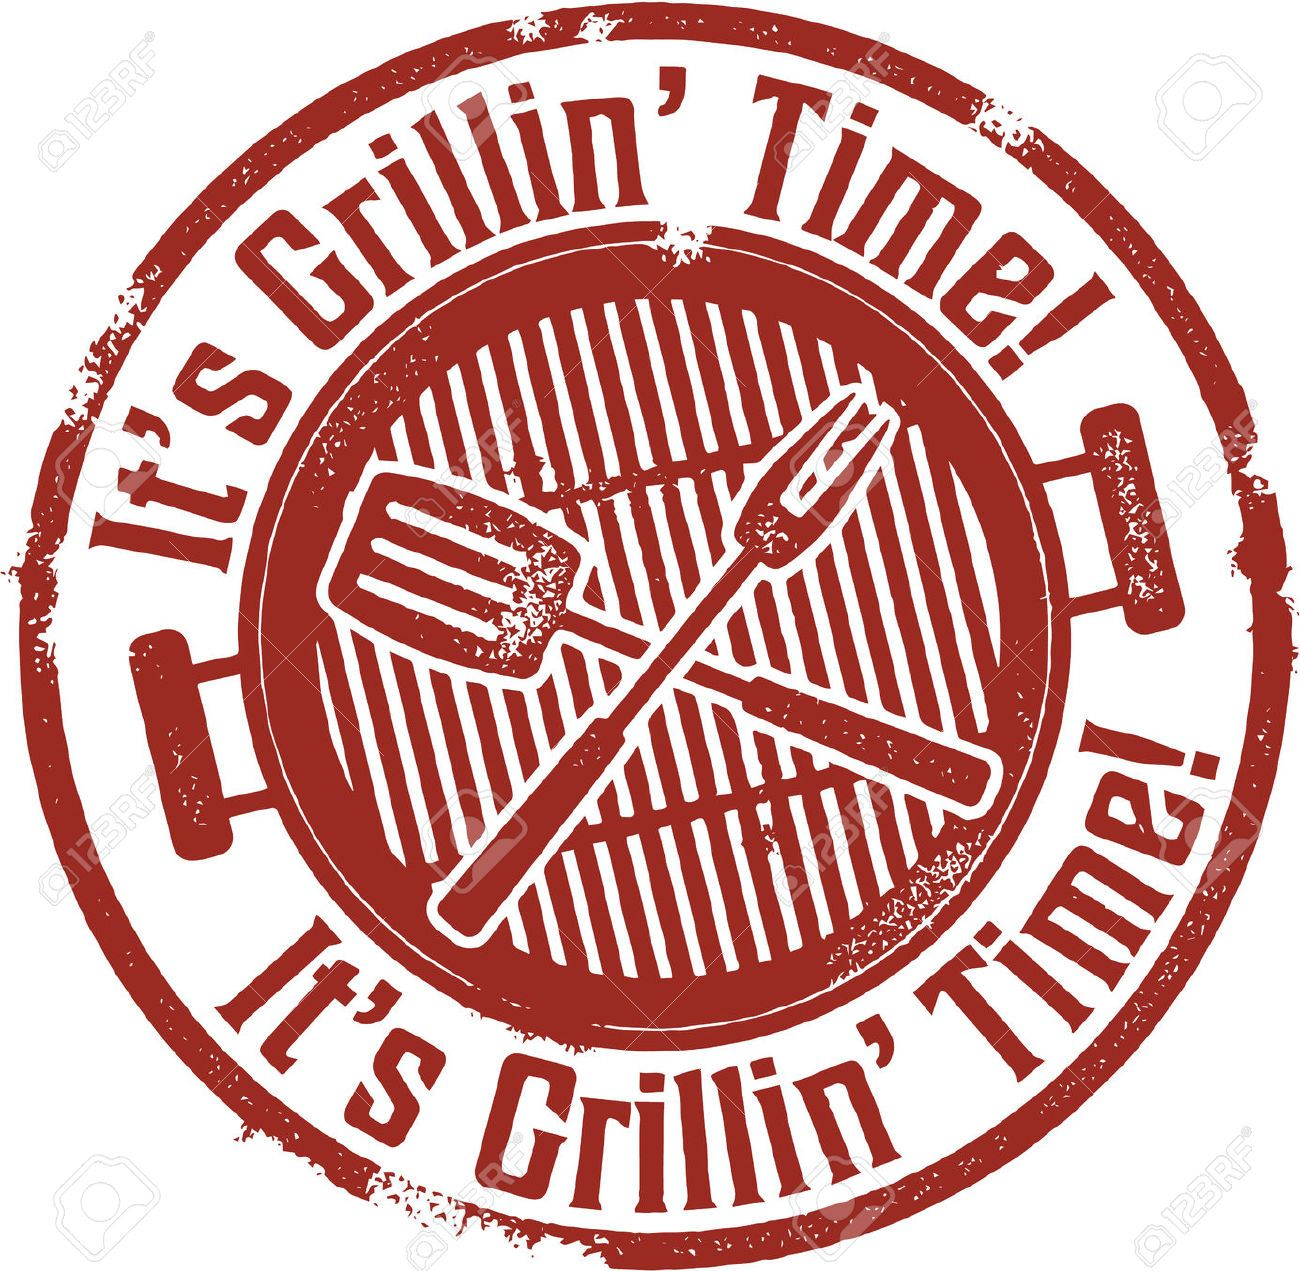 medium resolution of it s grilling bbq time royalty free cliparts vectors and stock illustration pic 27874236